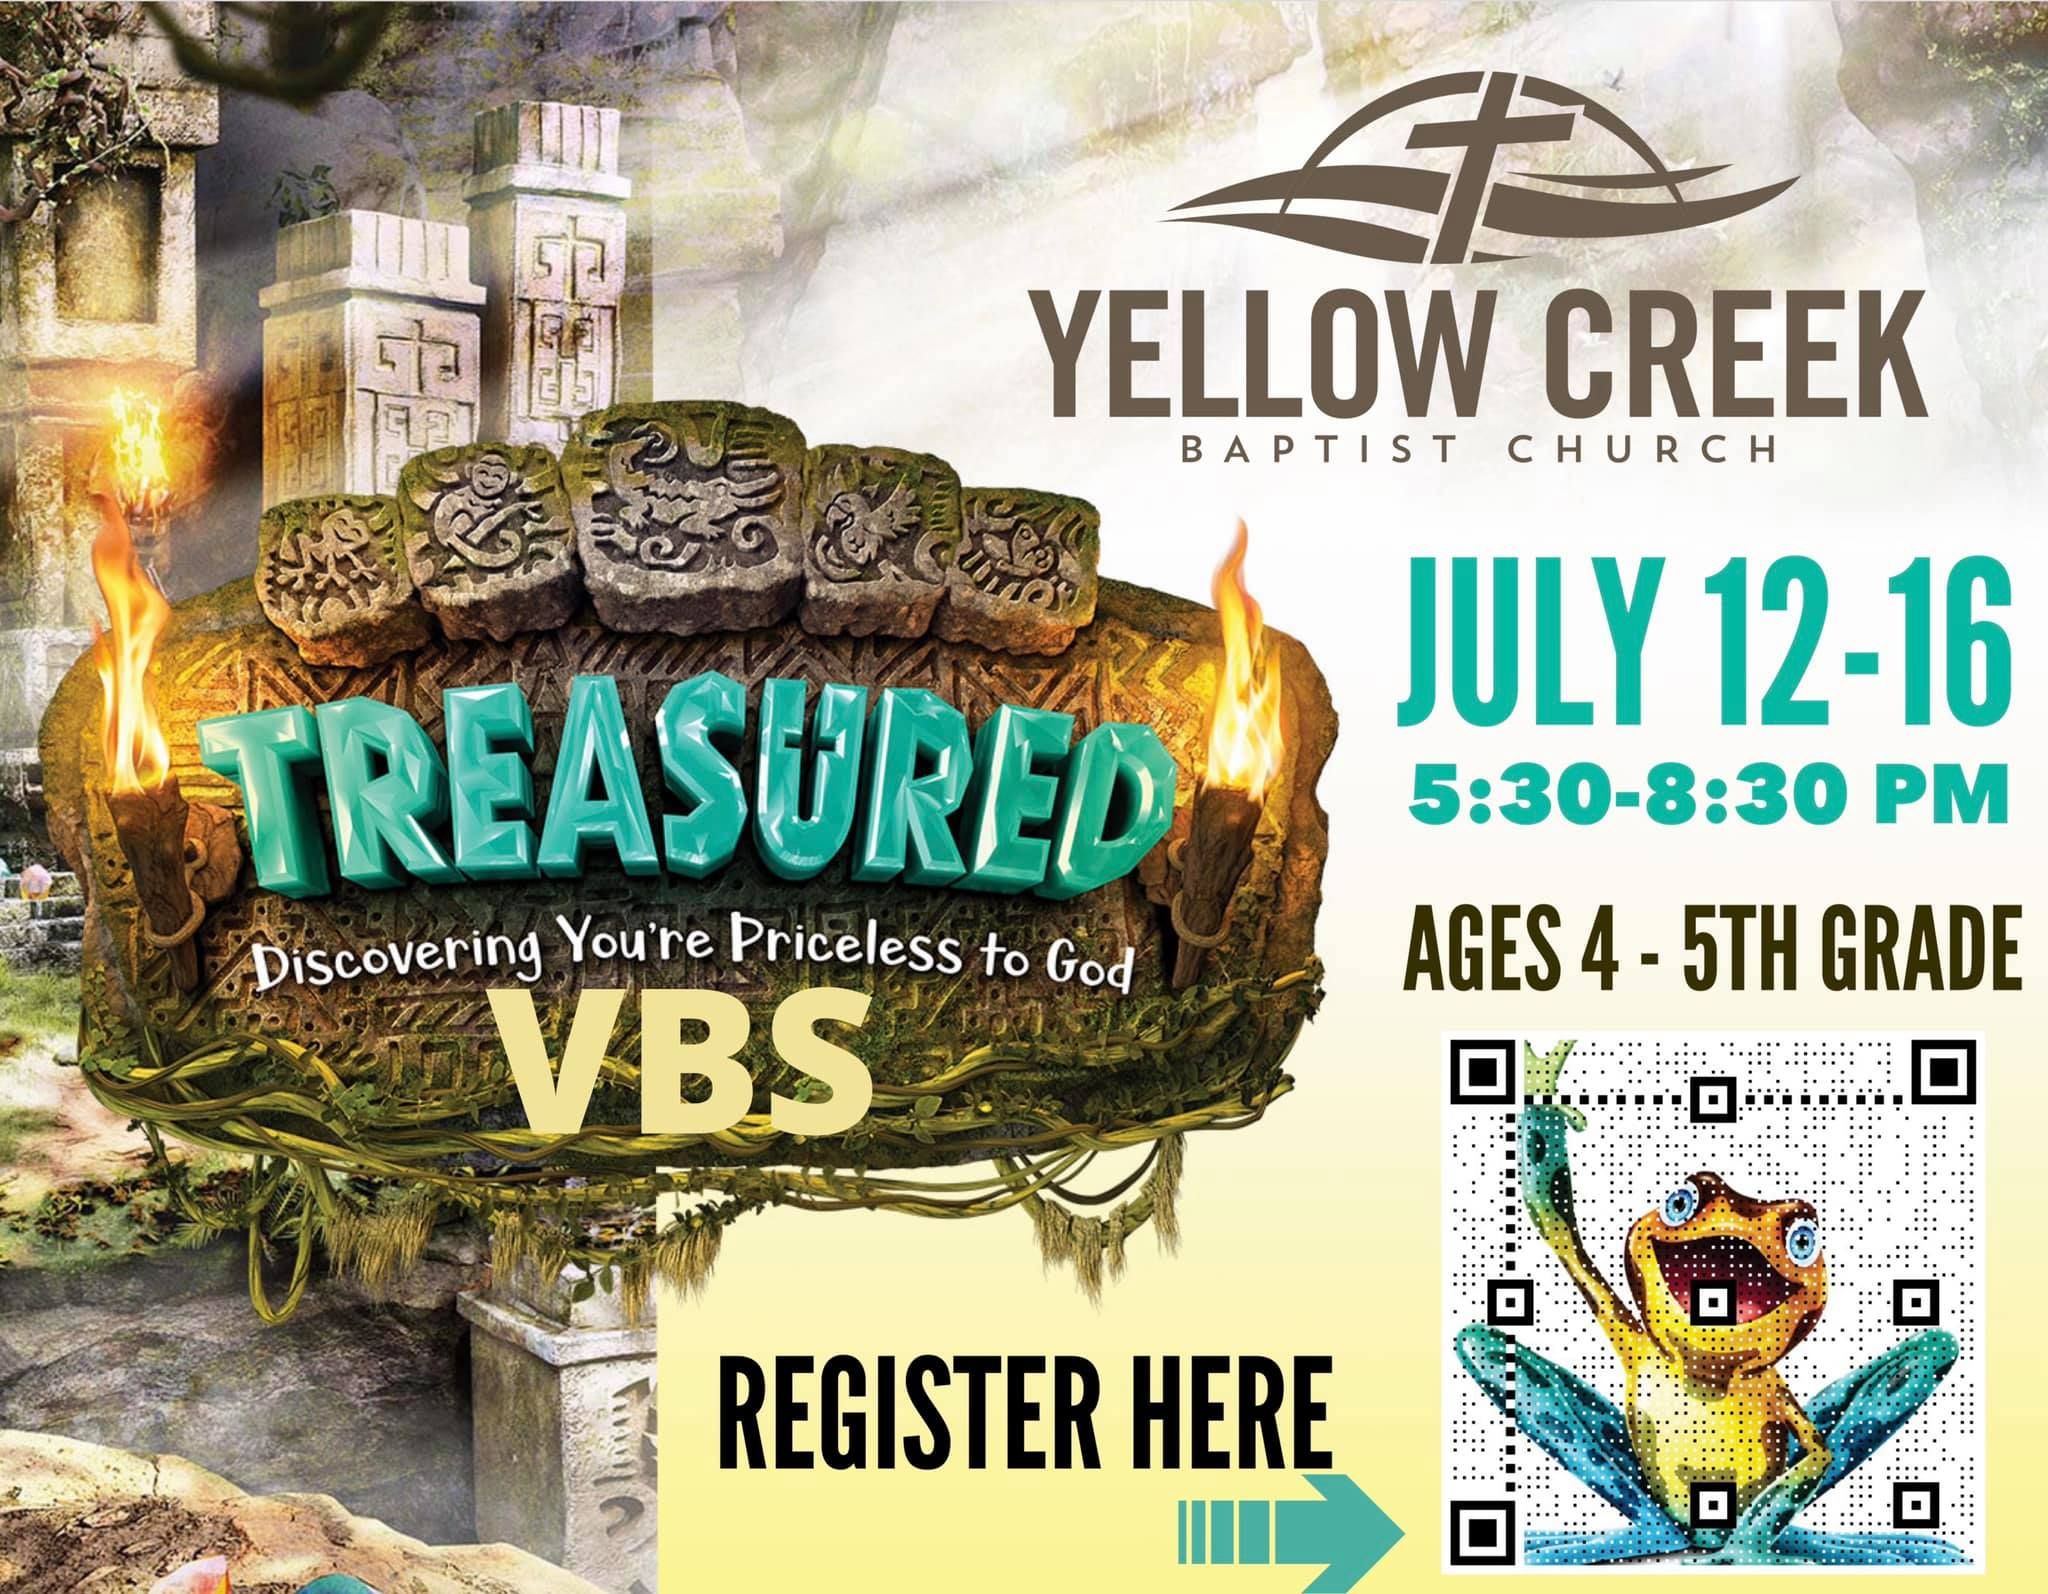 VBS sign-up ad